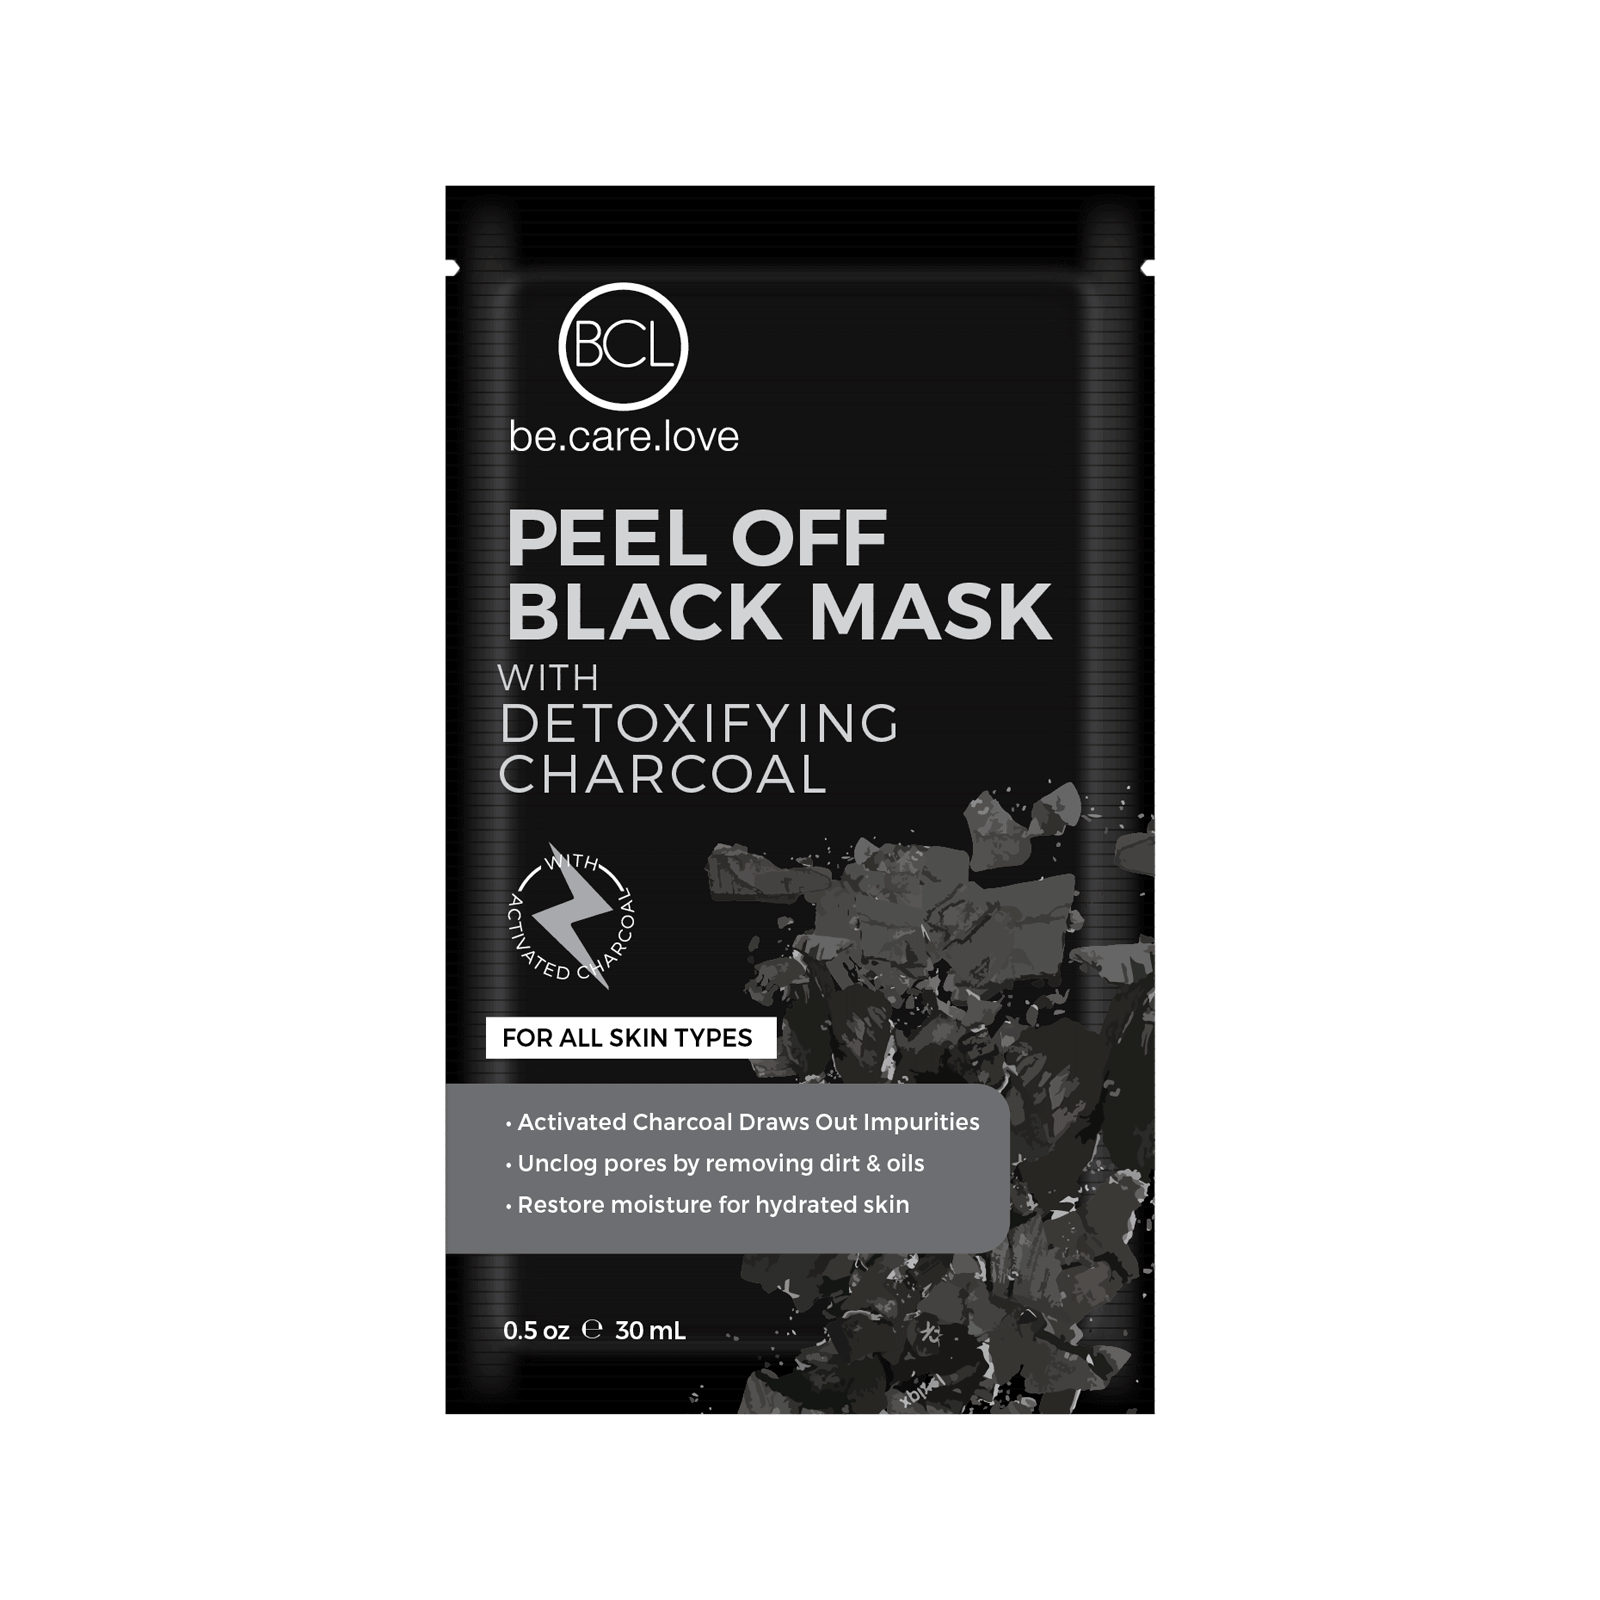 Peel Off Black Mask with Detoxifying Charcoal